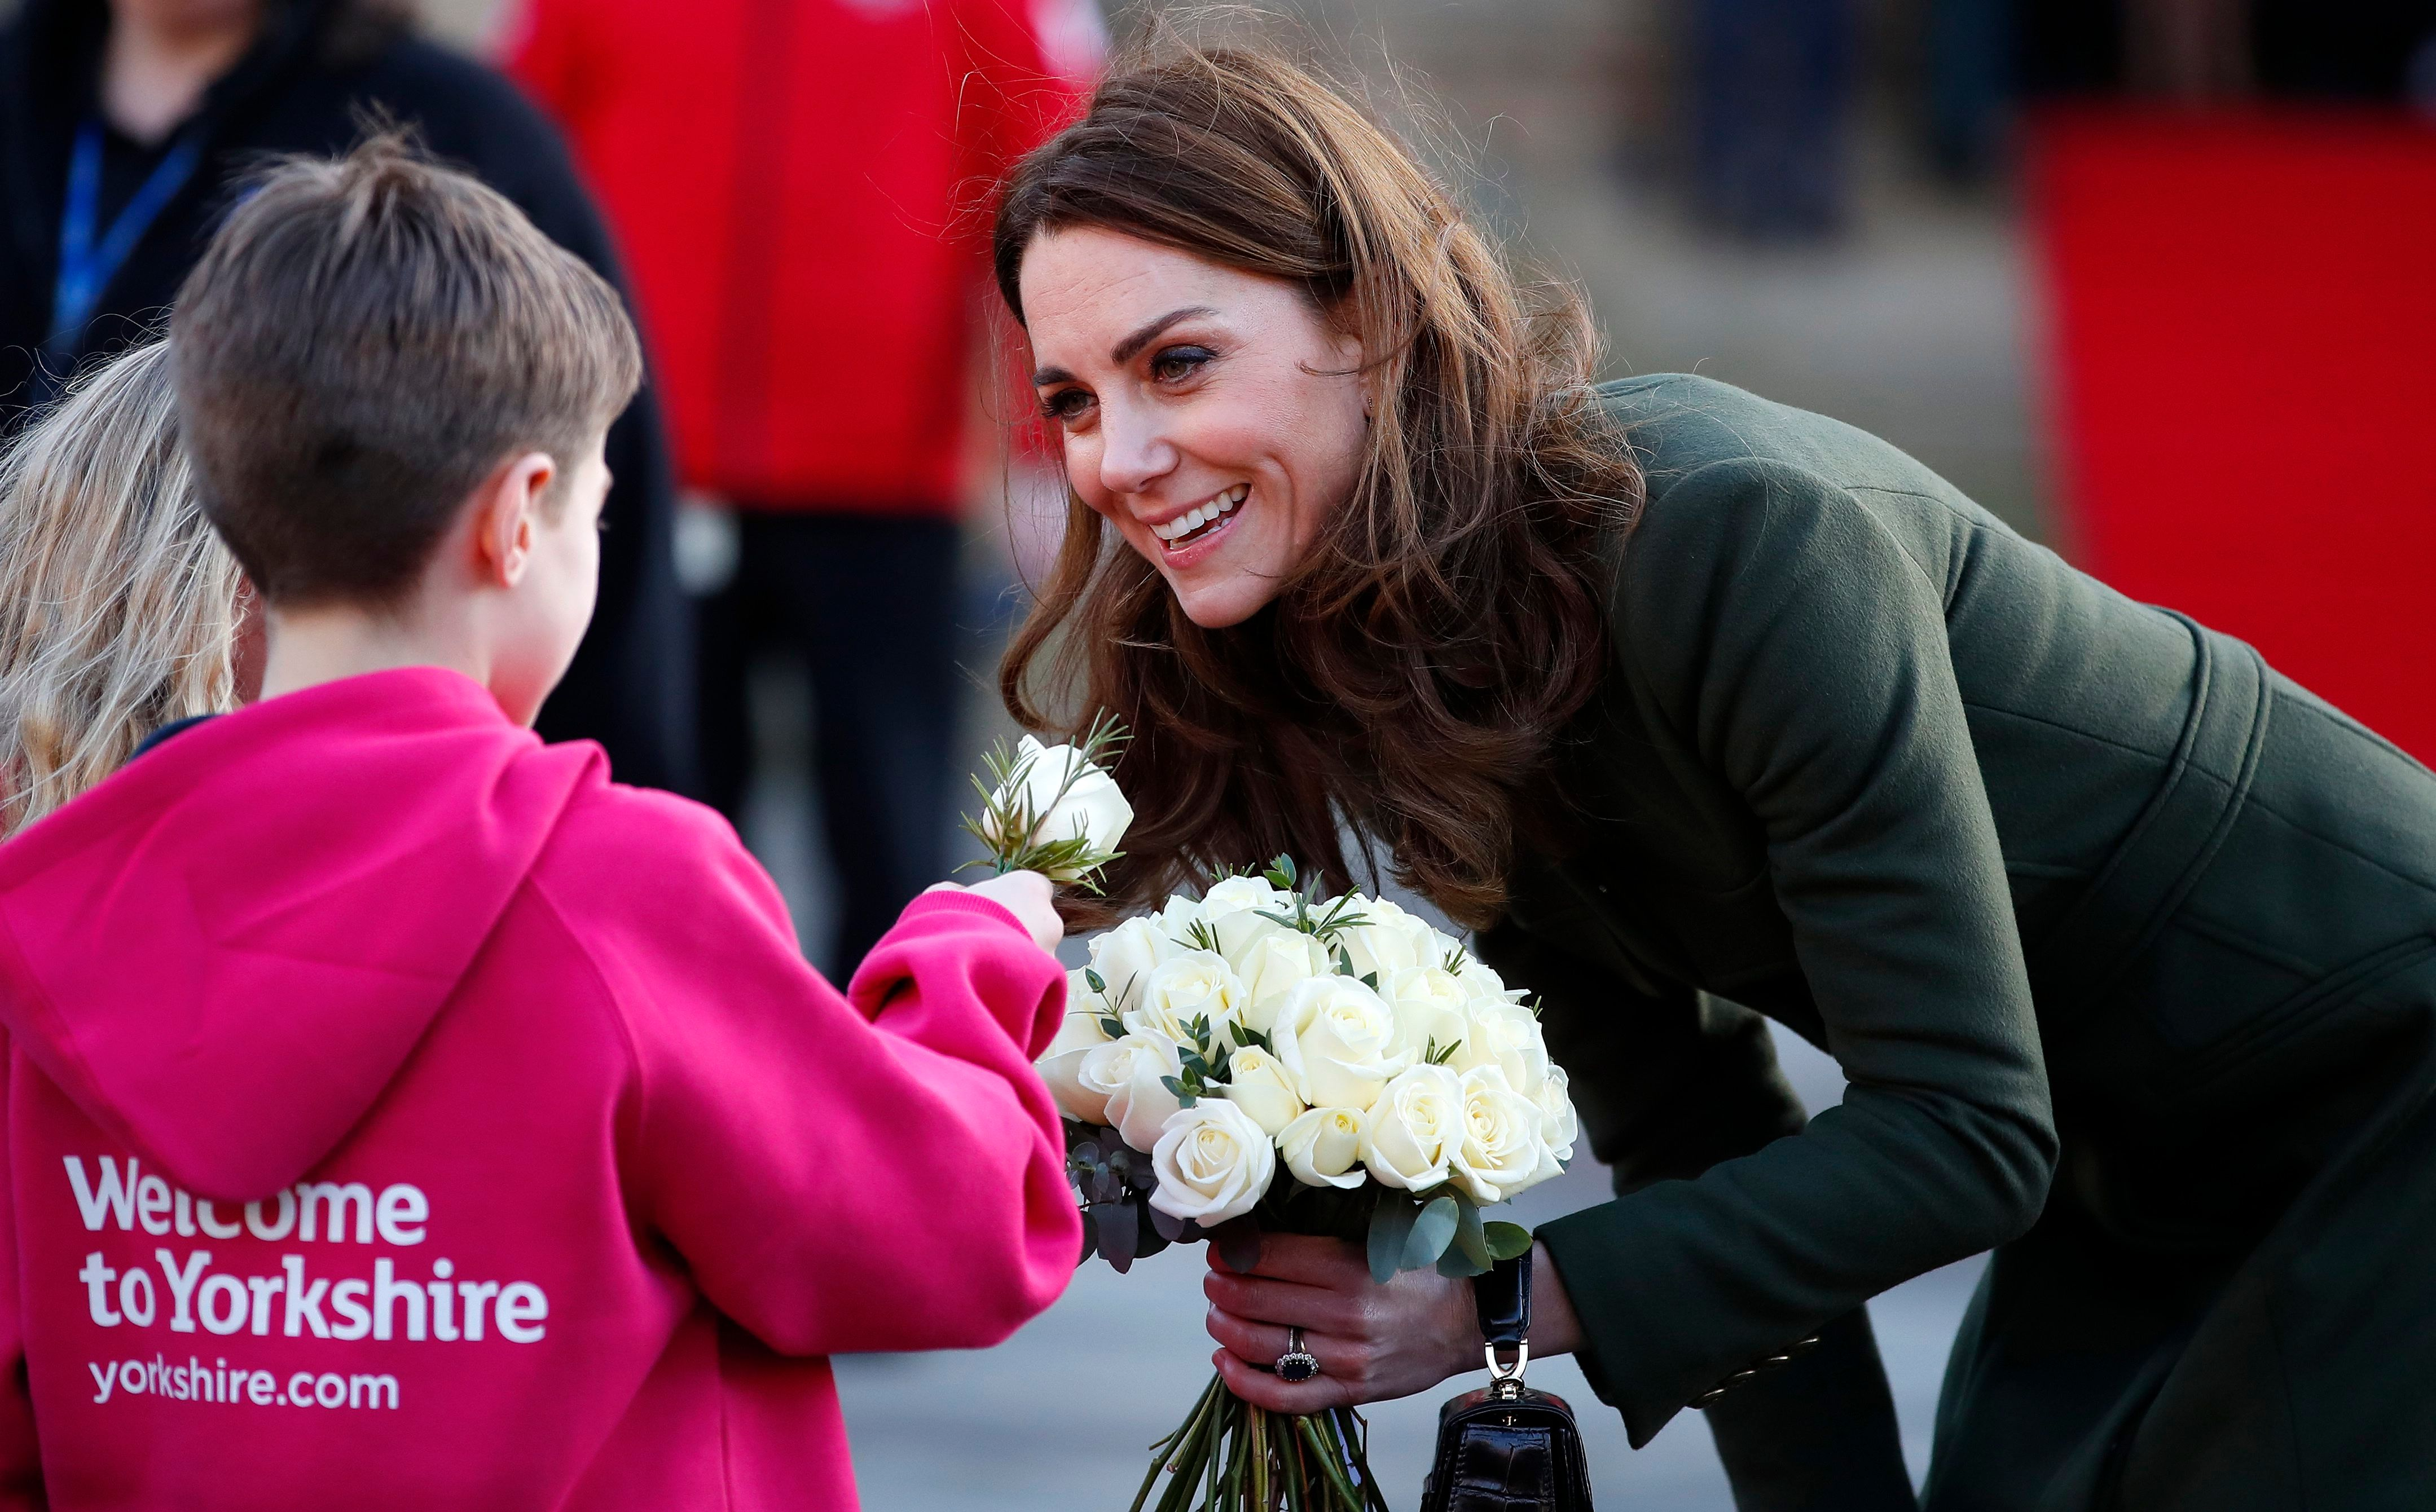 Kate Middleton Shares That Prince William Doesn't Want Any More Children